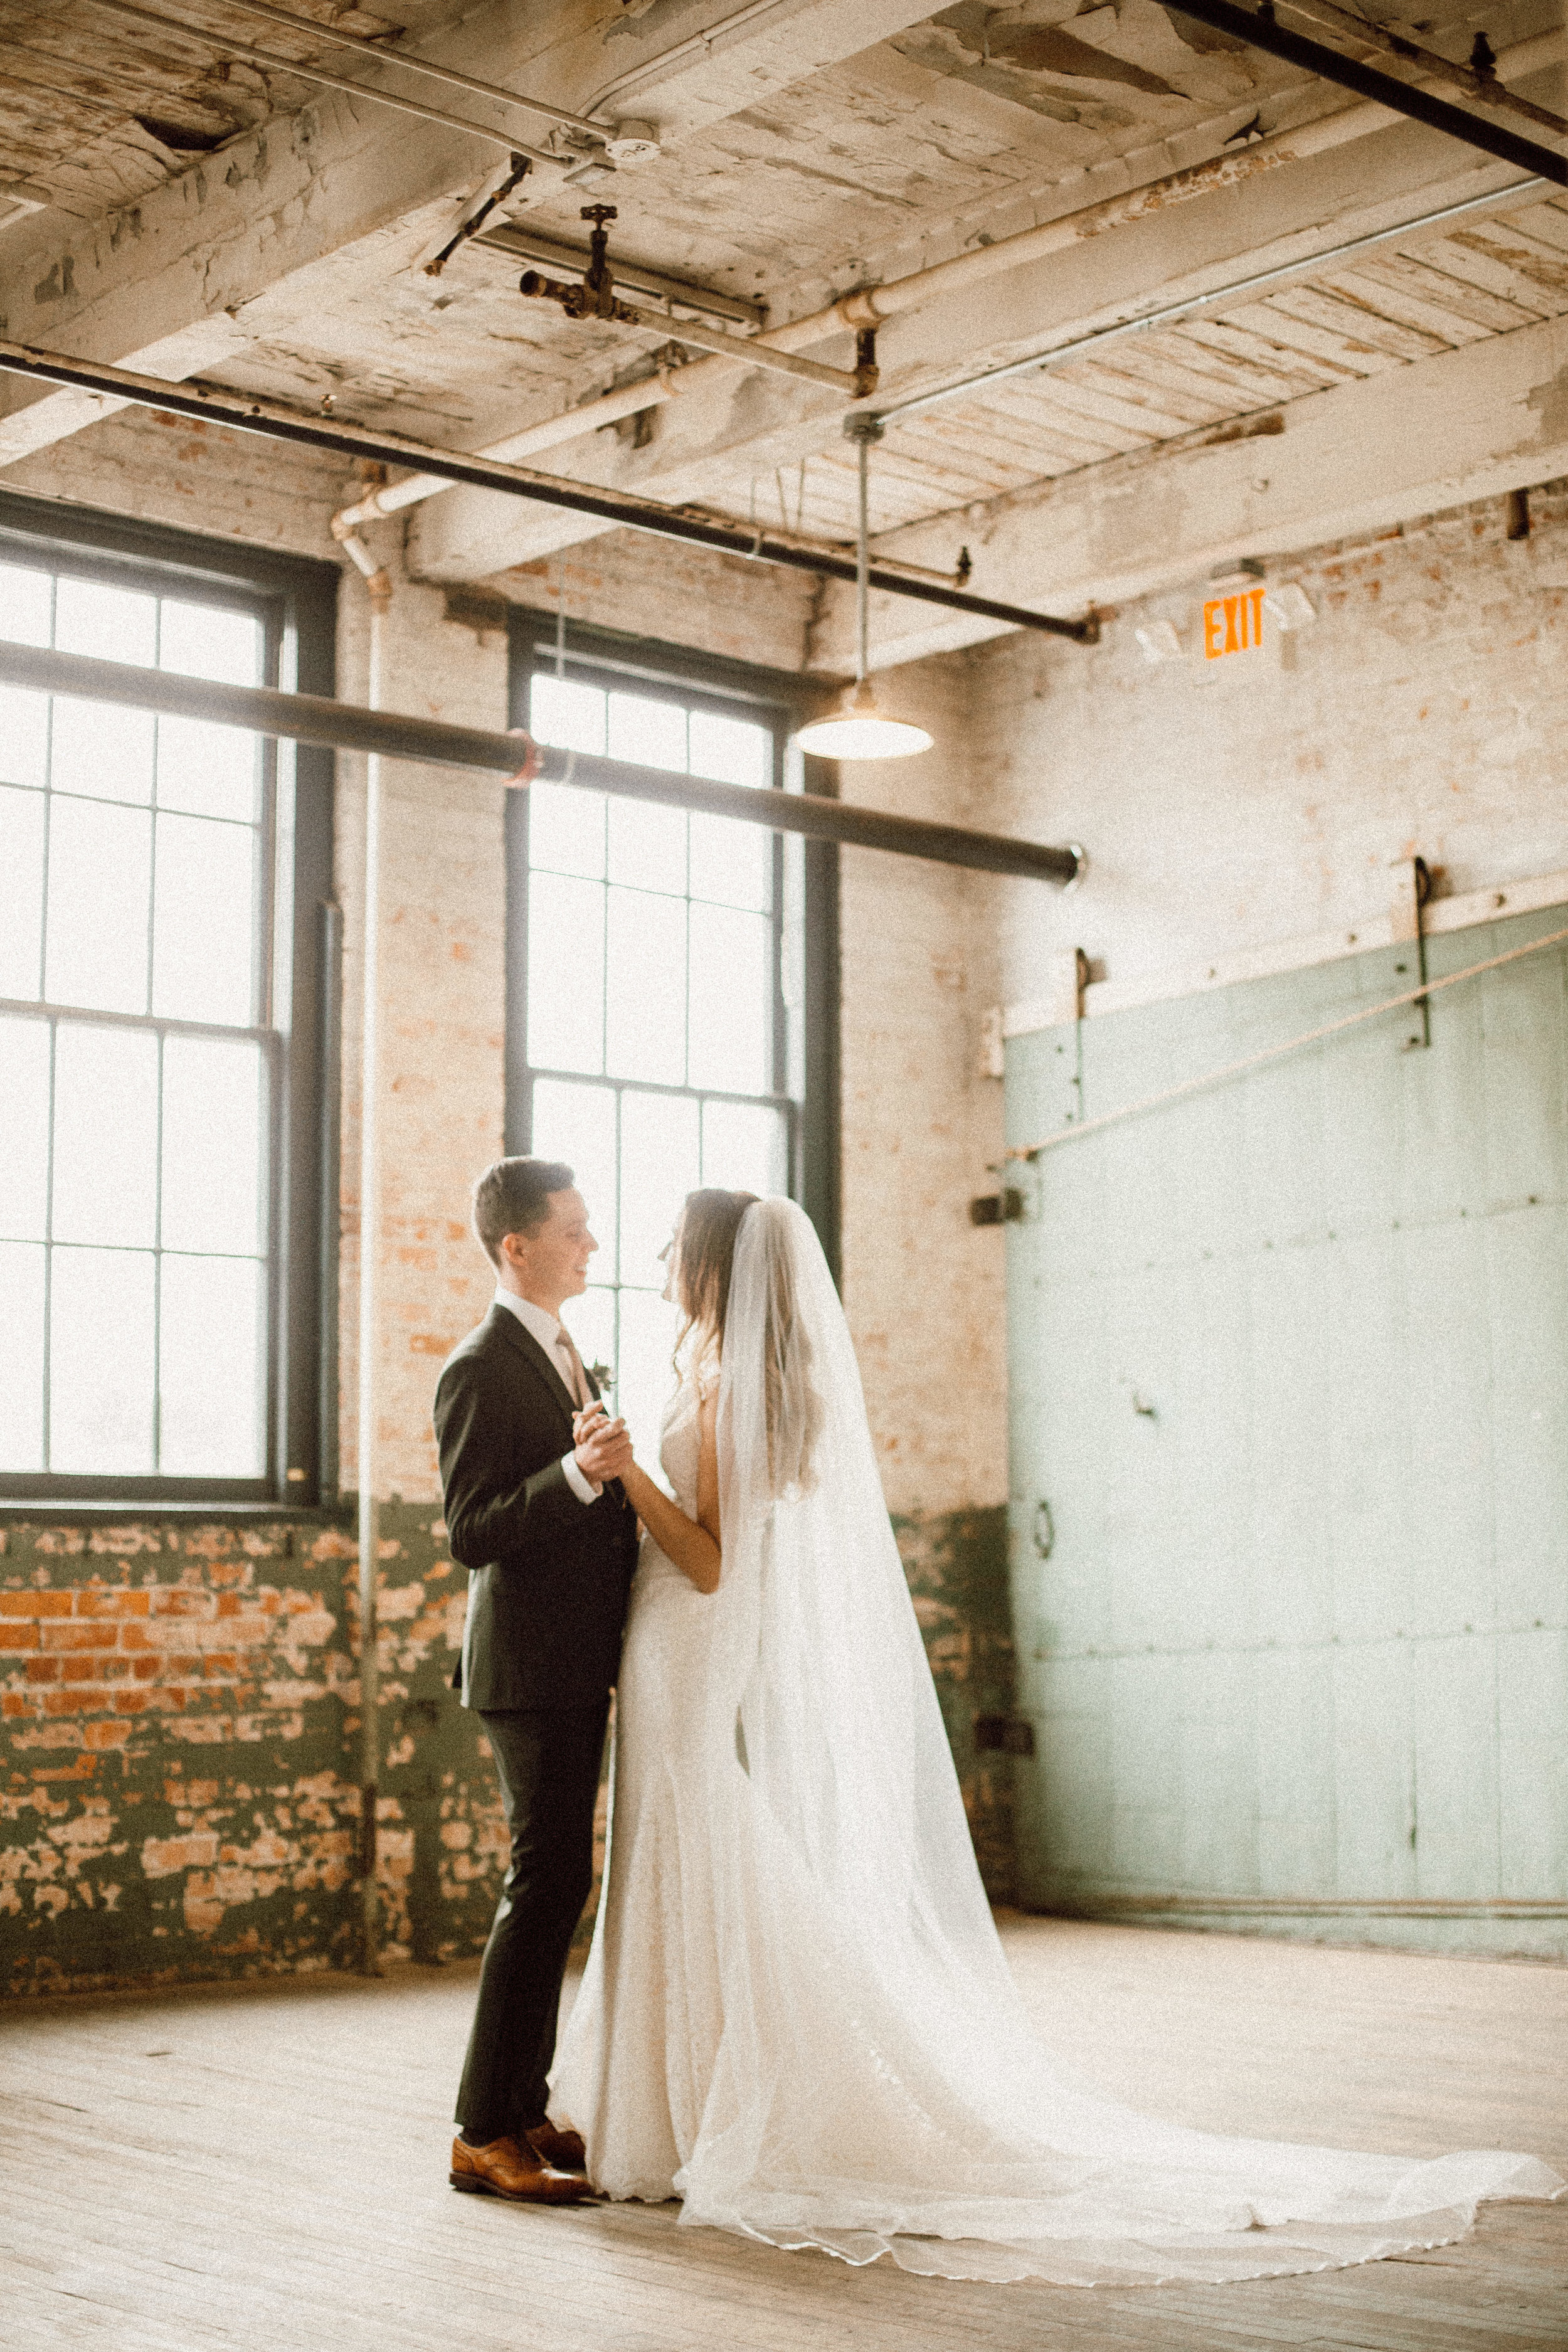 Katie_Vonasek_Photography_Ford_Piquette_Plant_Wedding_Detroit52.JPG